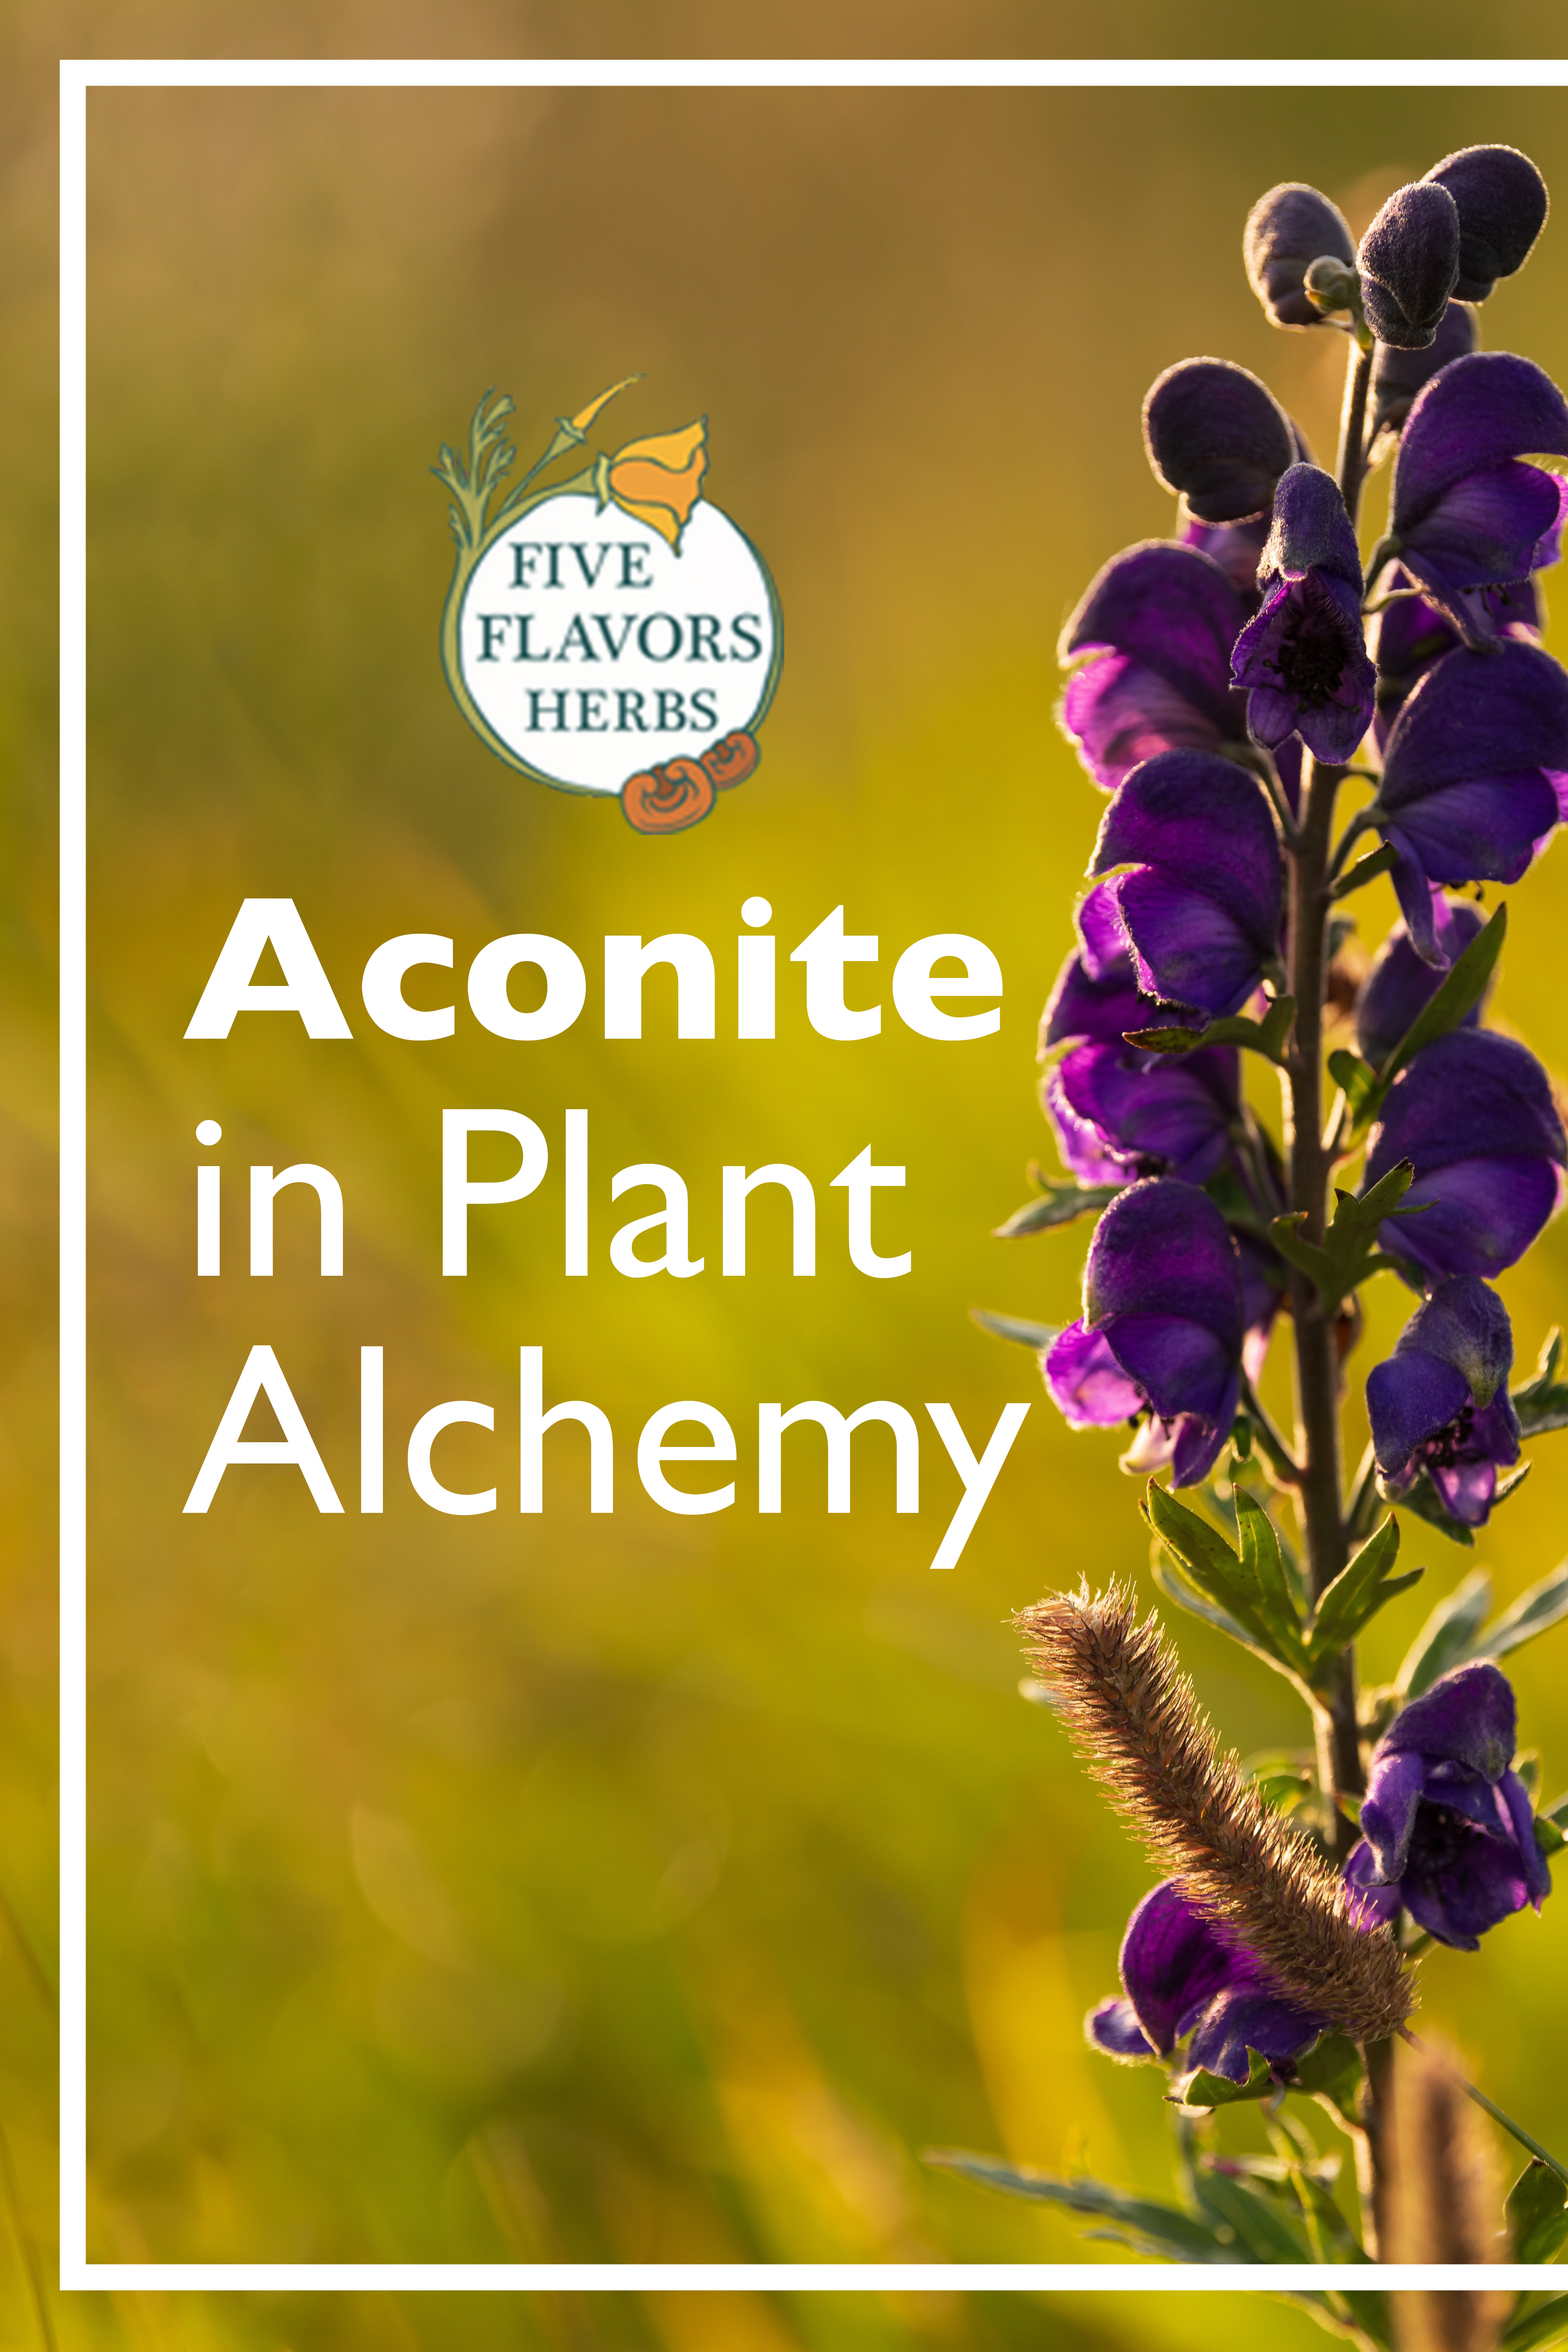 aconite-in-plant-alchemy-pin-from-five-flavors-herbs